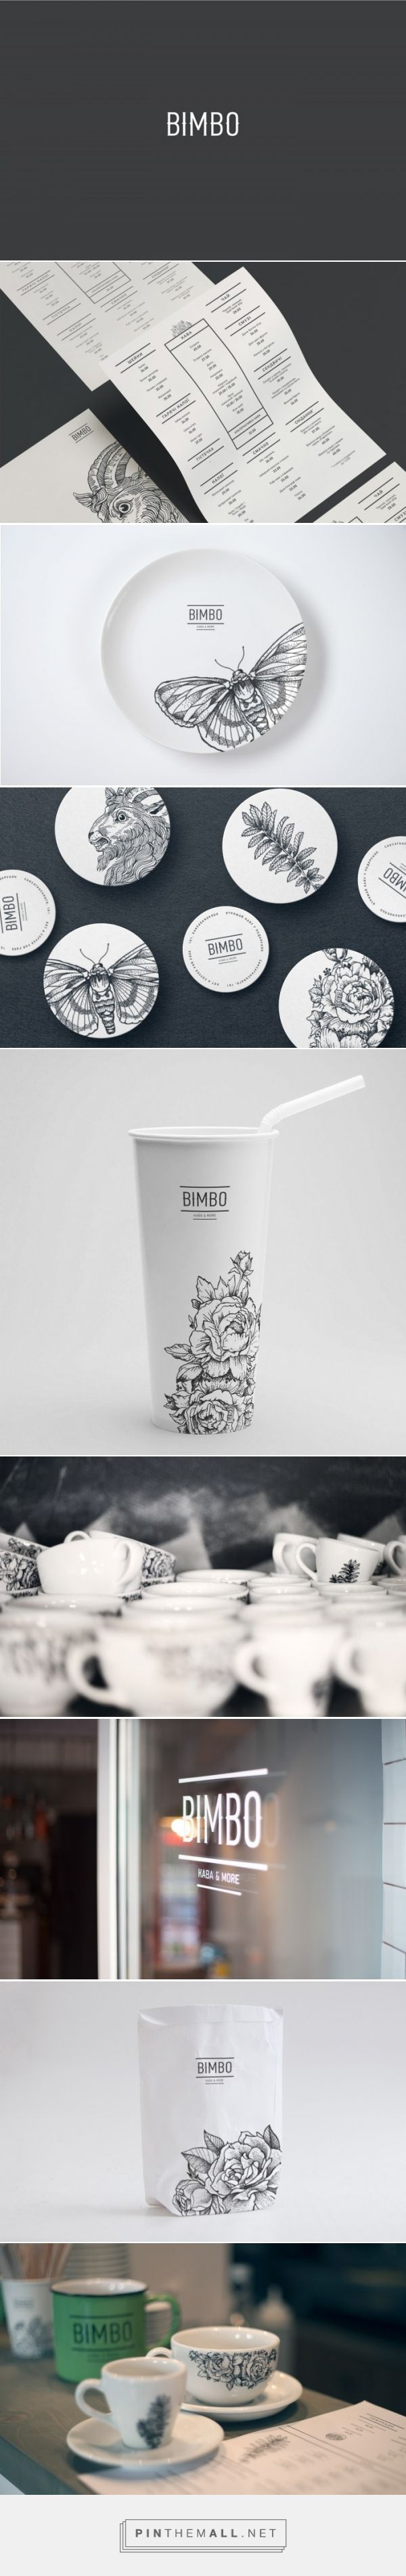 Bimbo Coffee Bar Branding by Grits + Grids